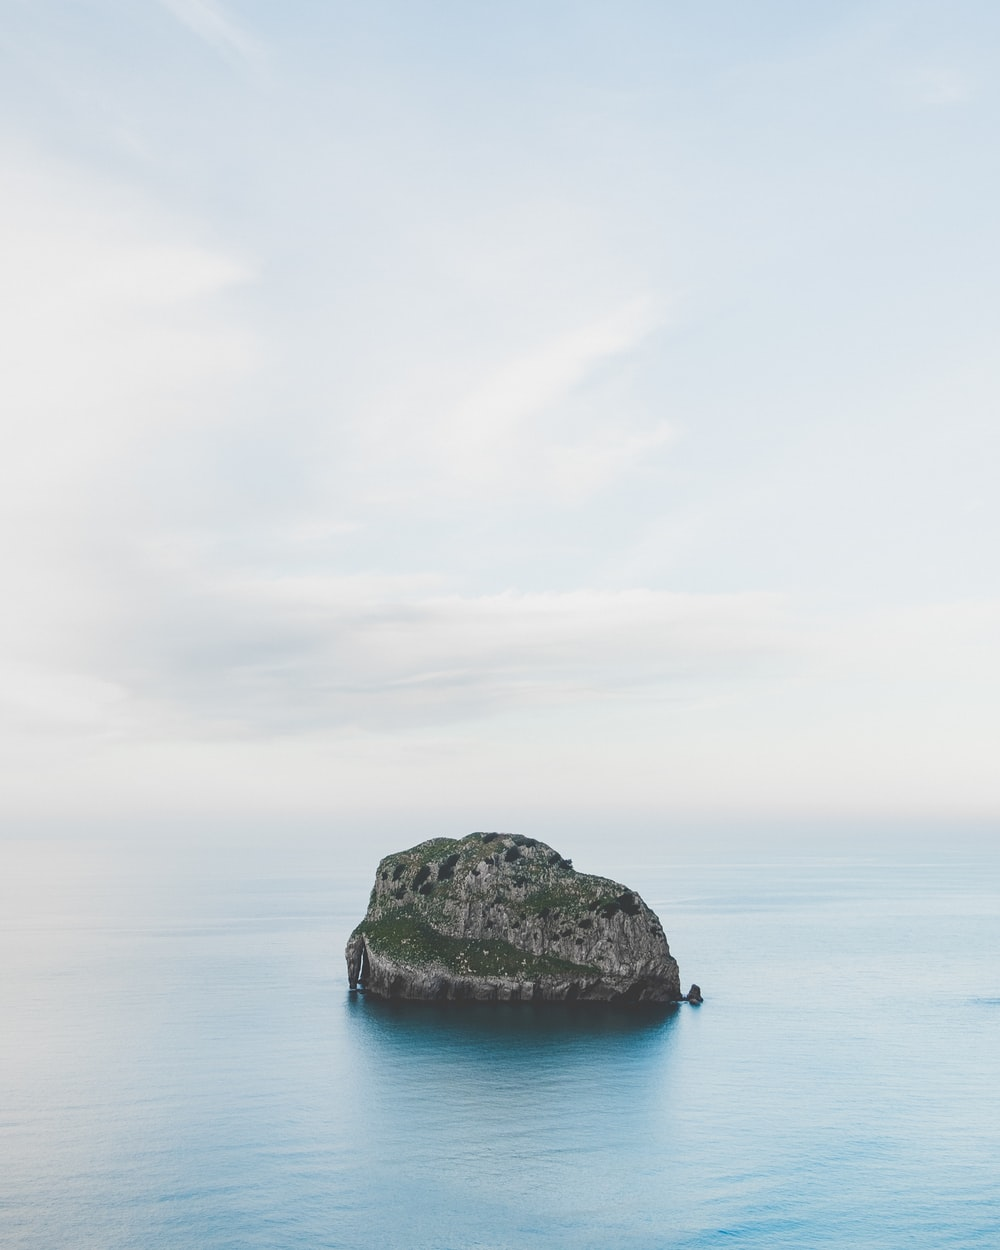 gray rock formation on blue sea under white clouds during daytime